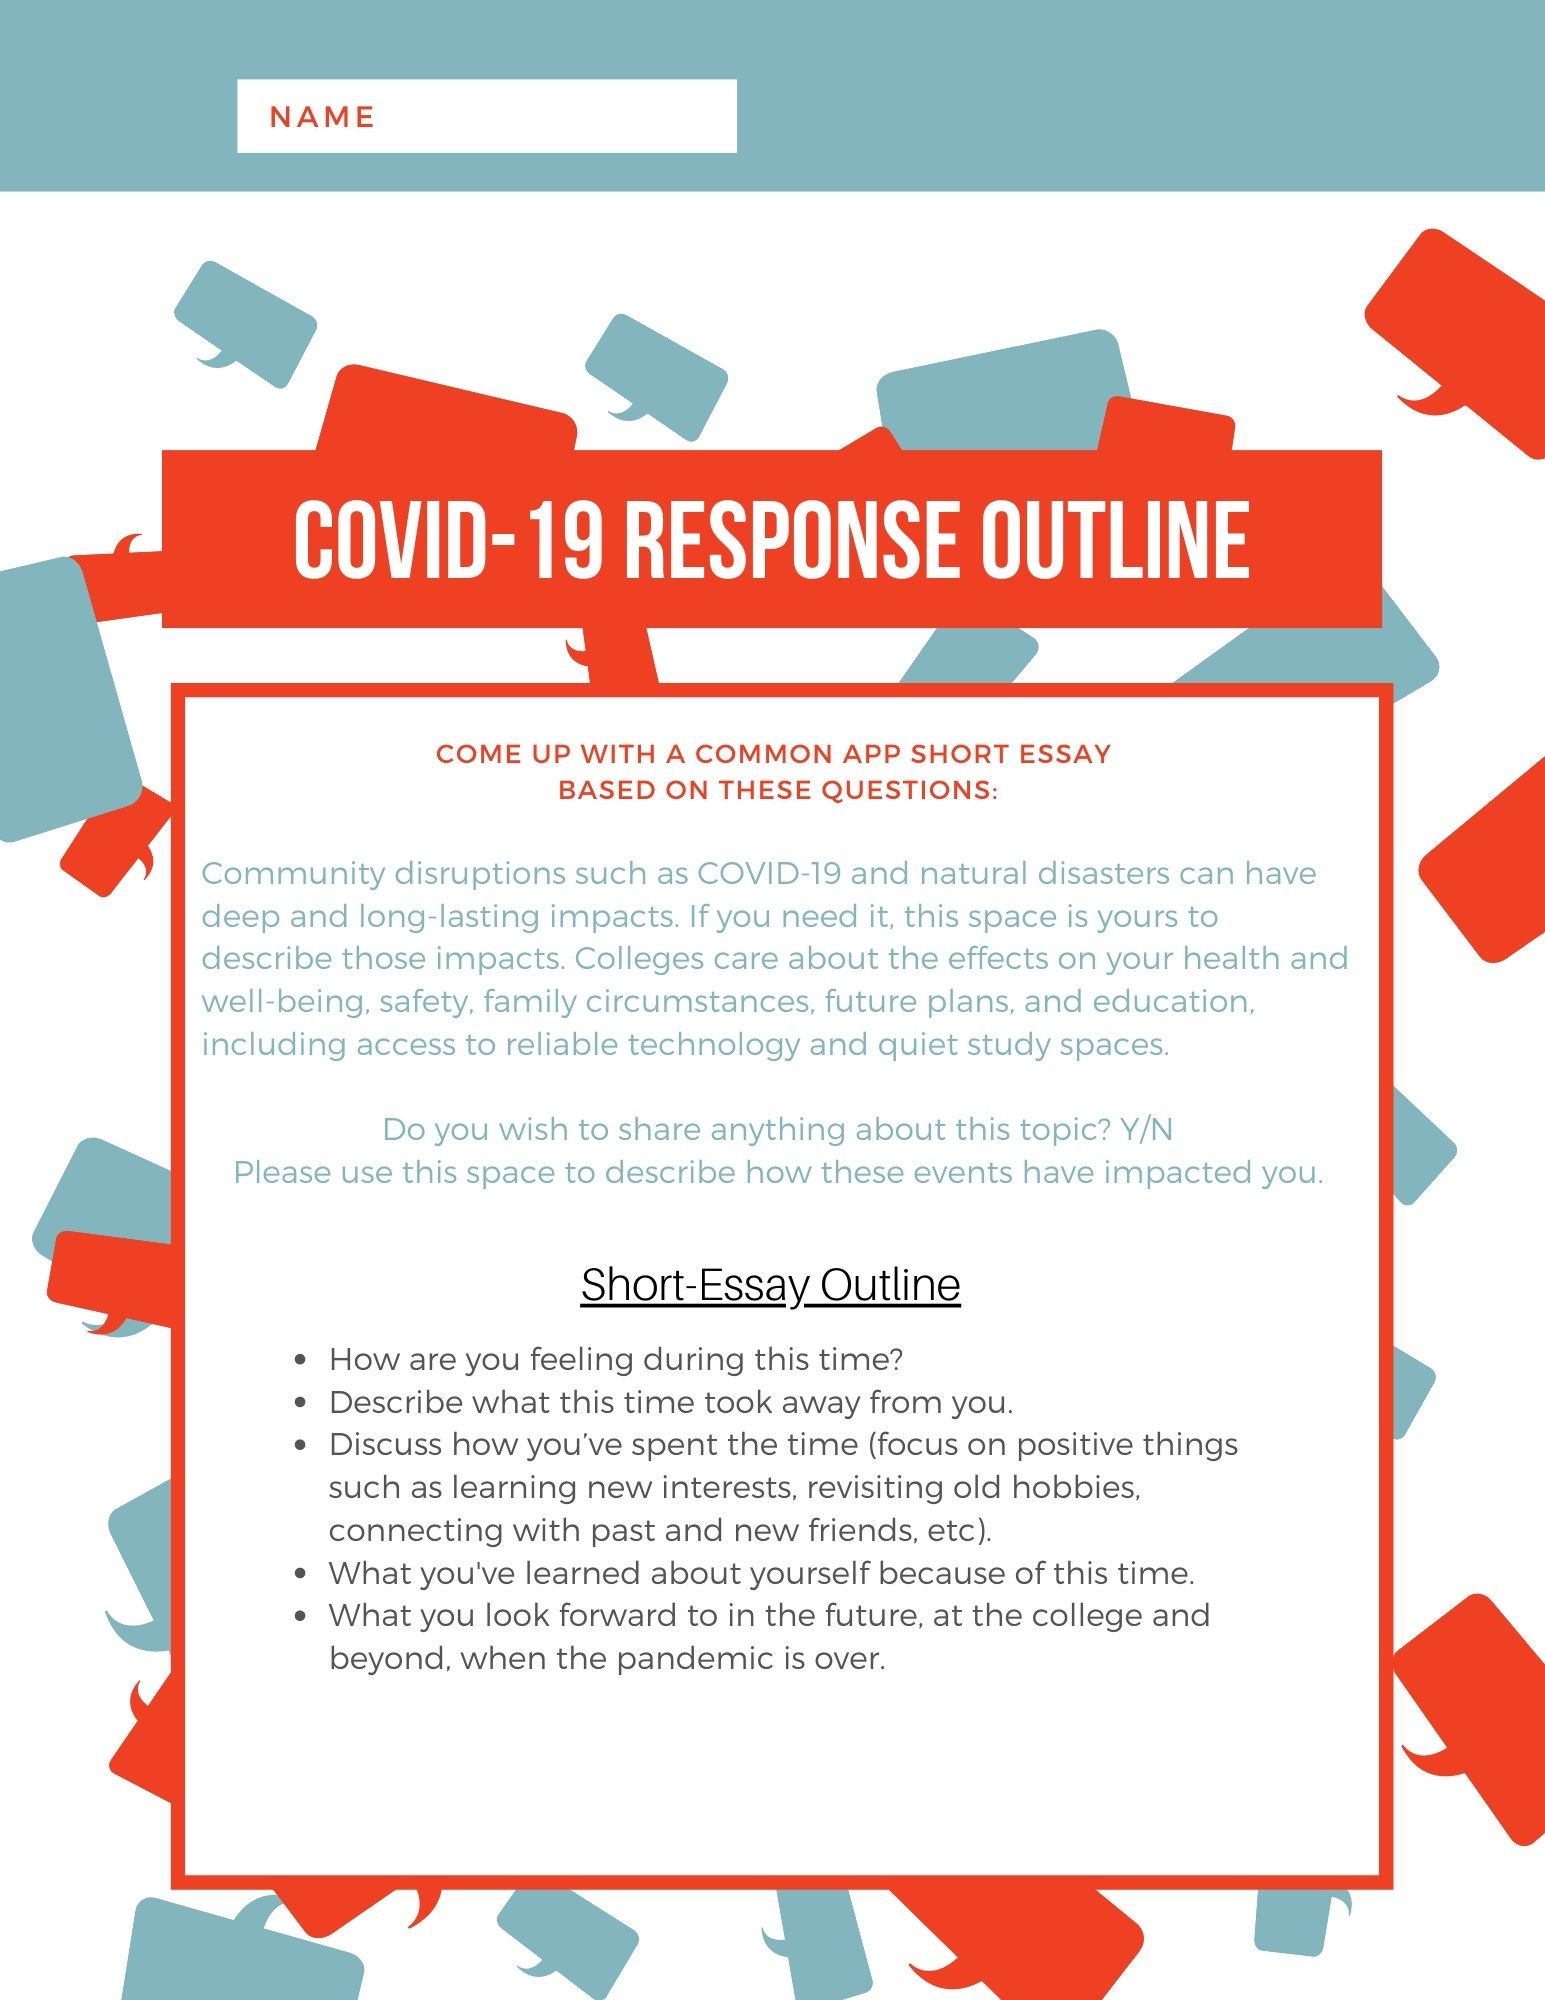 COVID-19-RESPONSE-OUTLINE